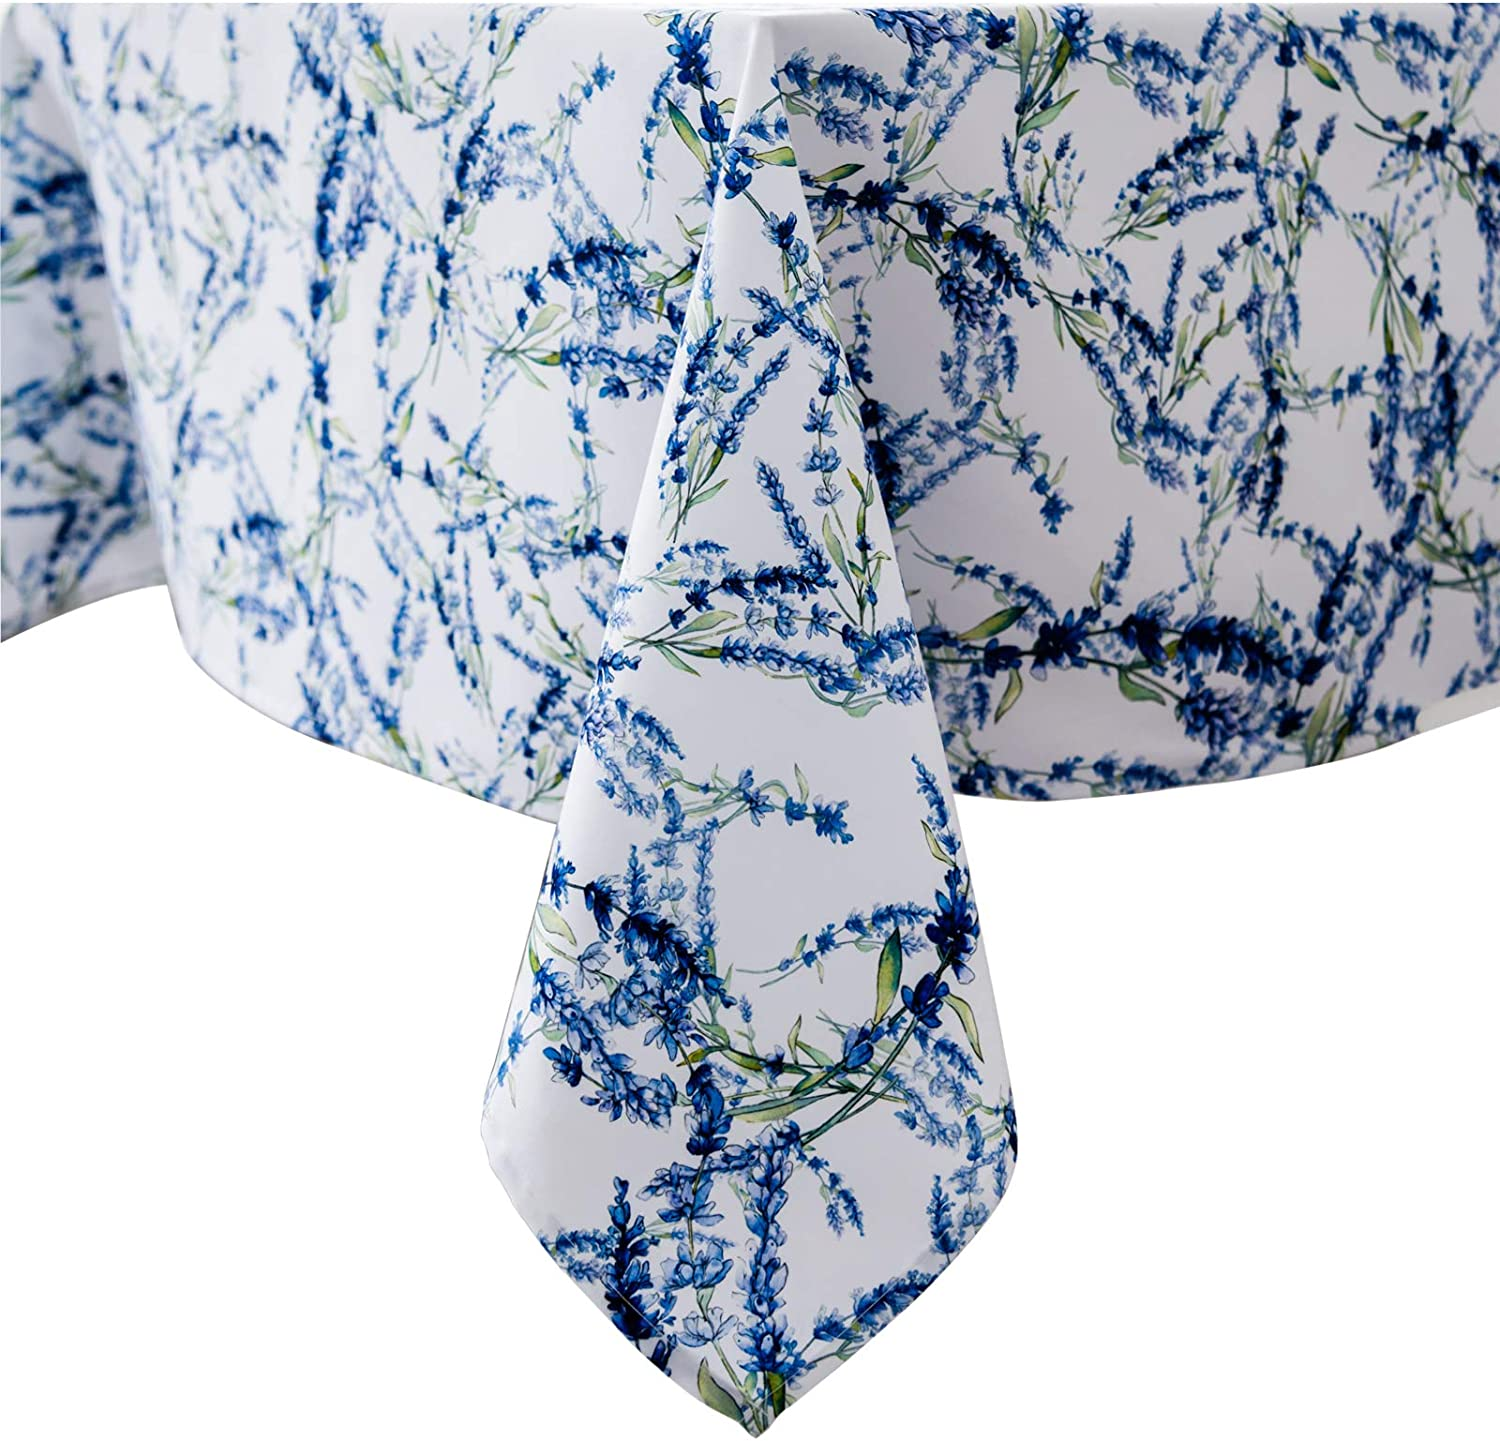 Rectangle Blue and Green Sale SALE% online shop OFF Floral Flower Printed Tablecloth Polyes